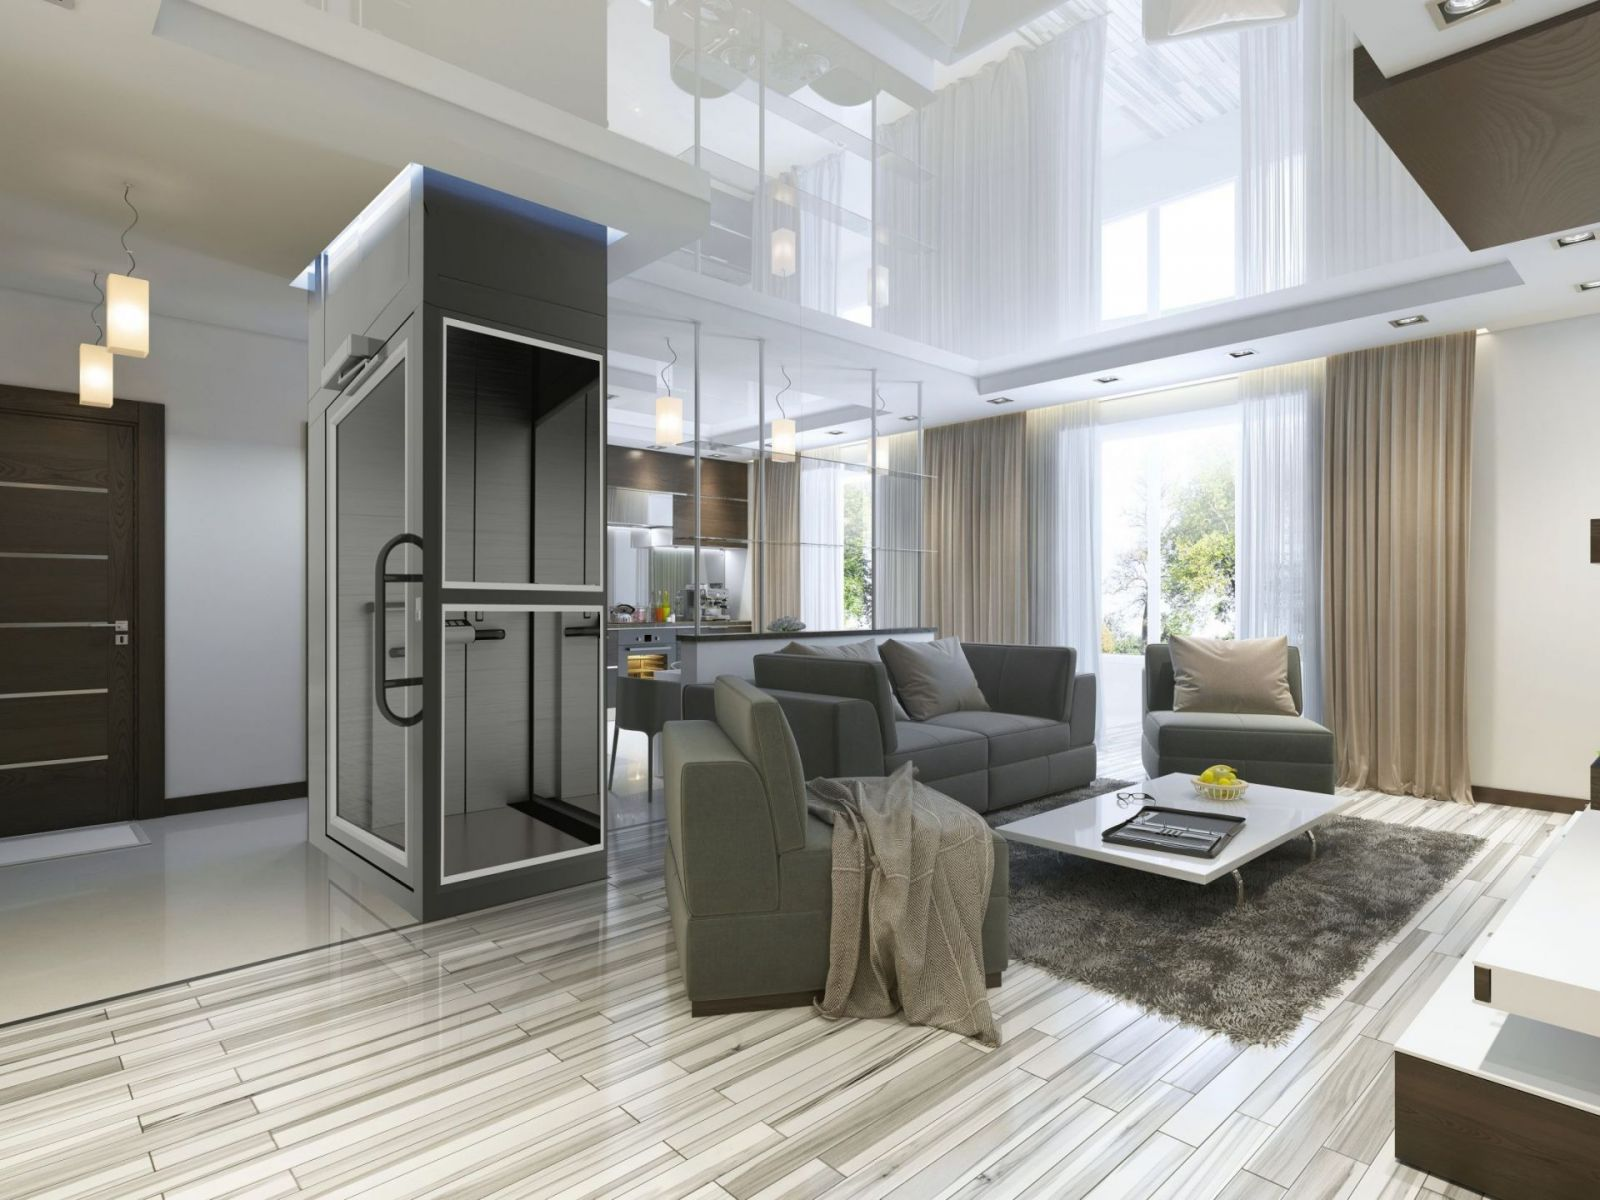 Condato home lift in modern house